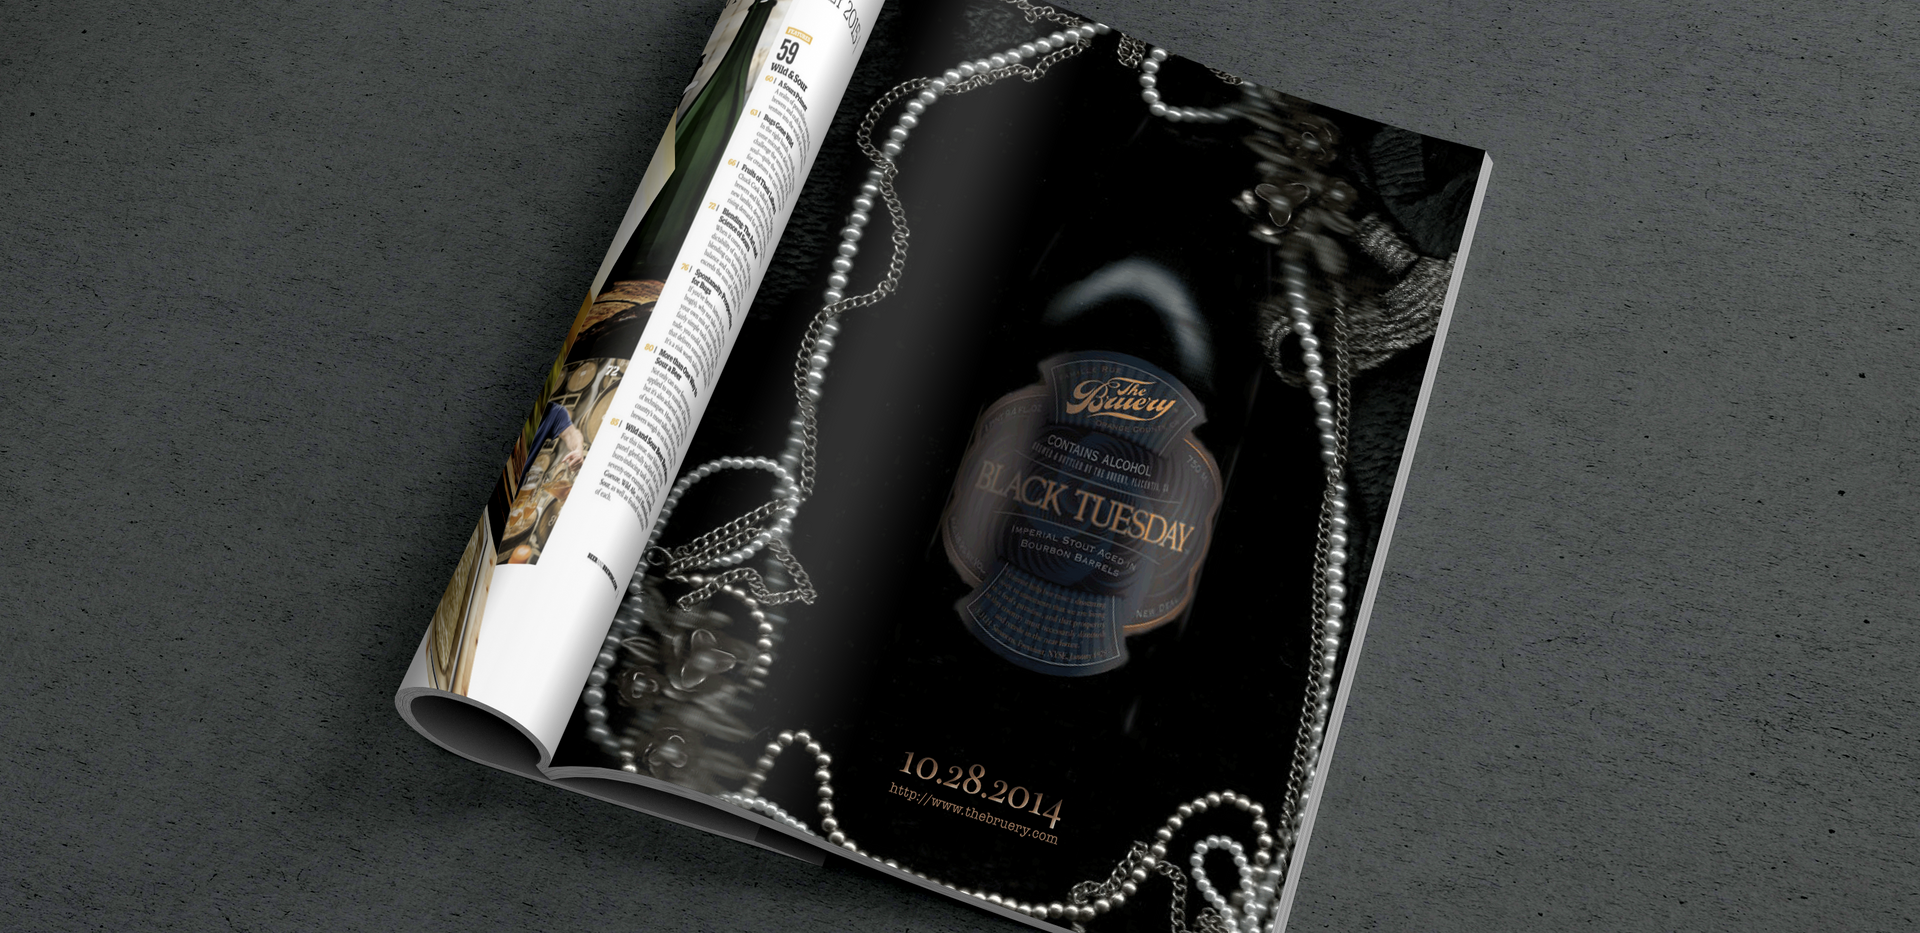 THE BRUERY  |  Black Tuesday Mag Mock-up